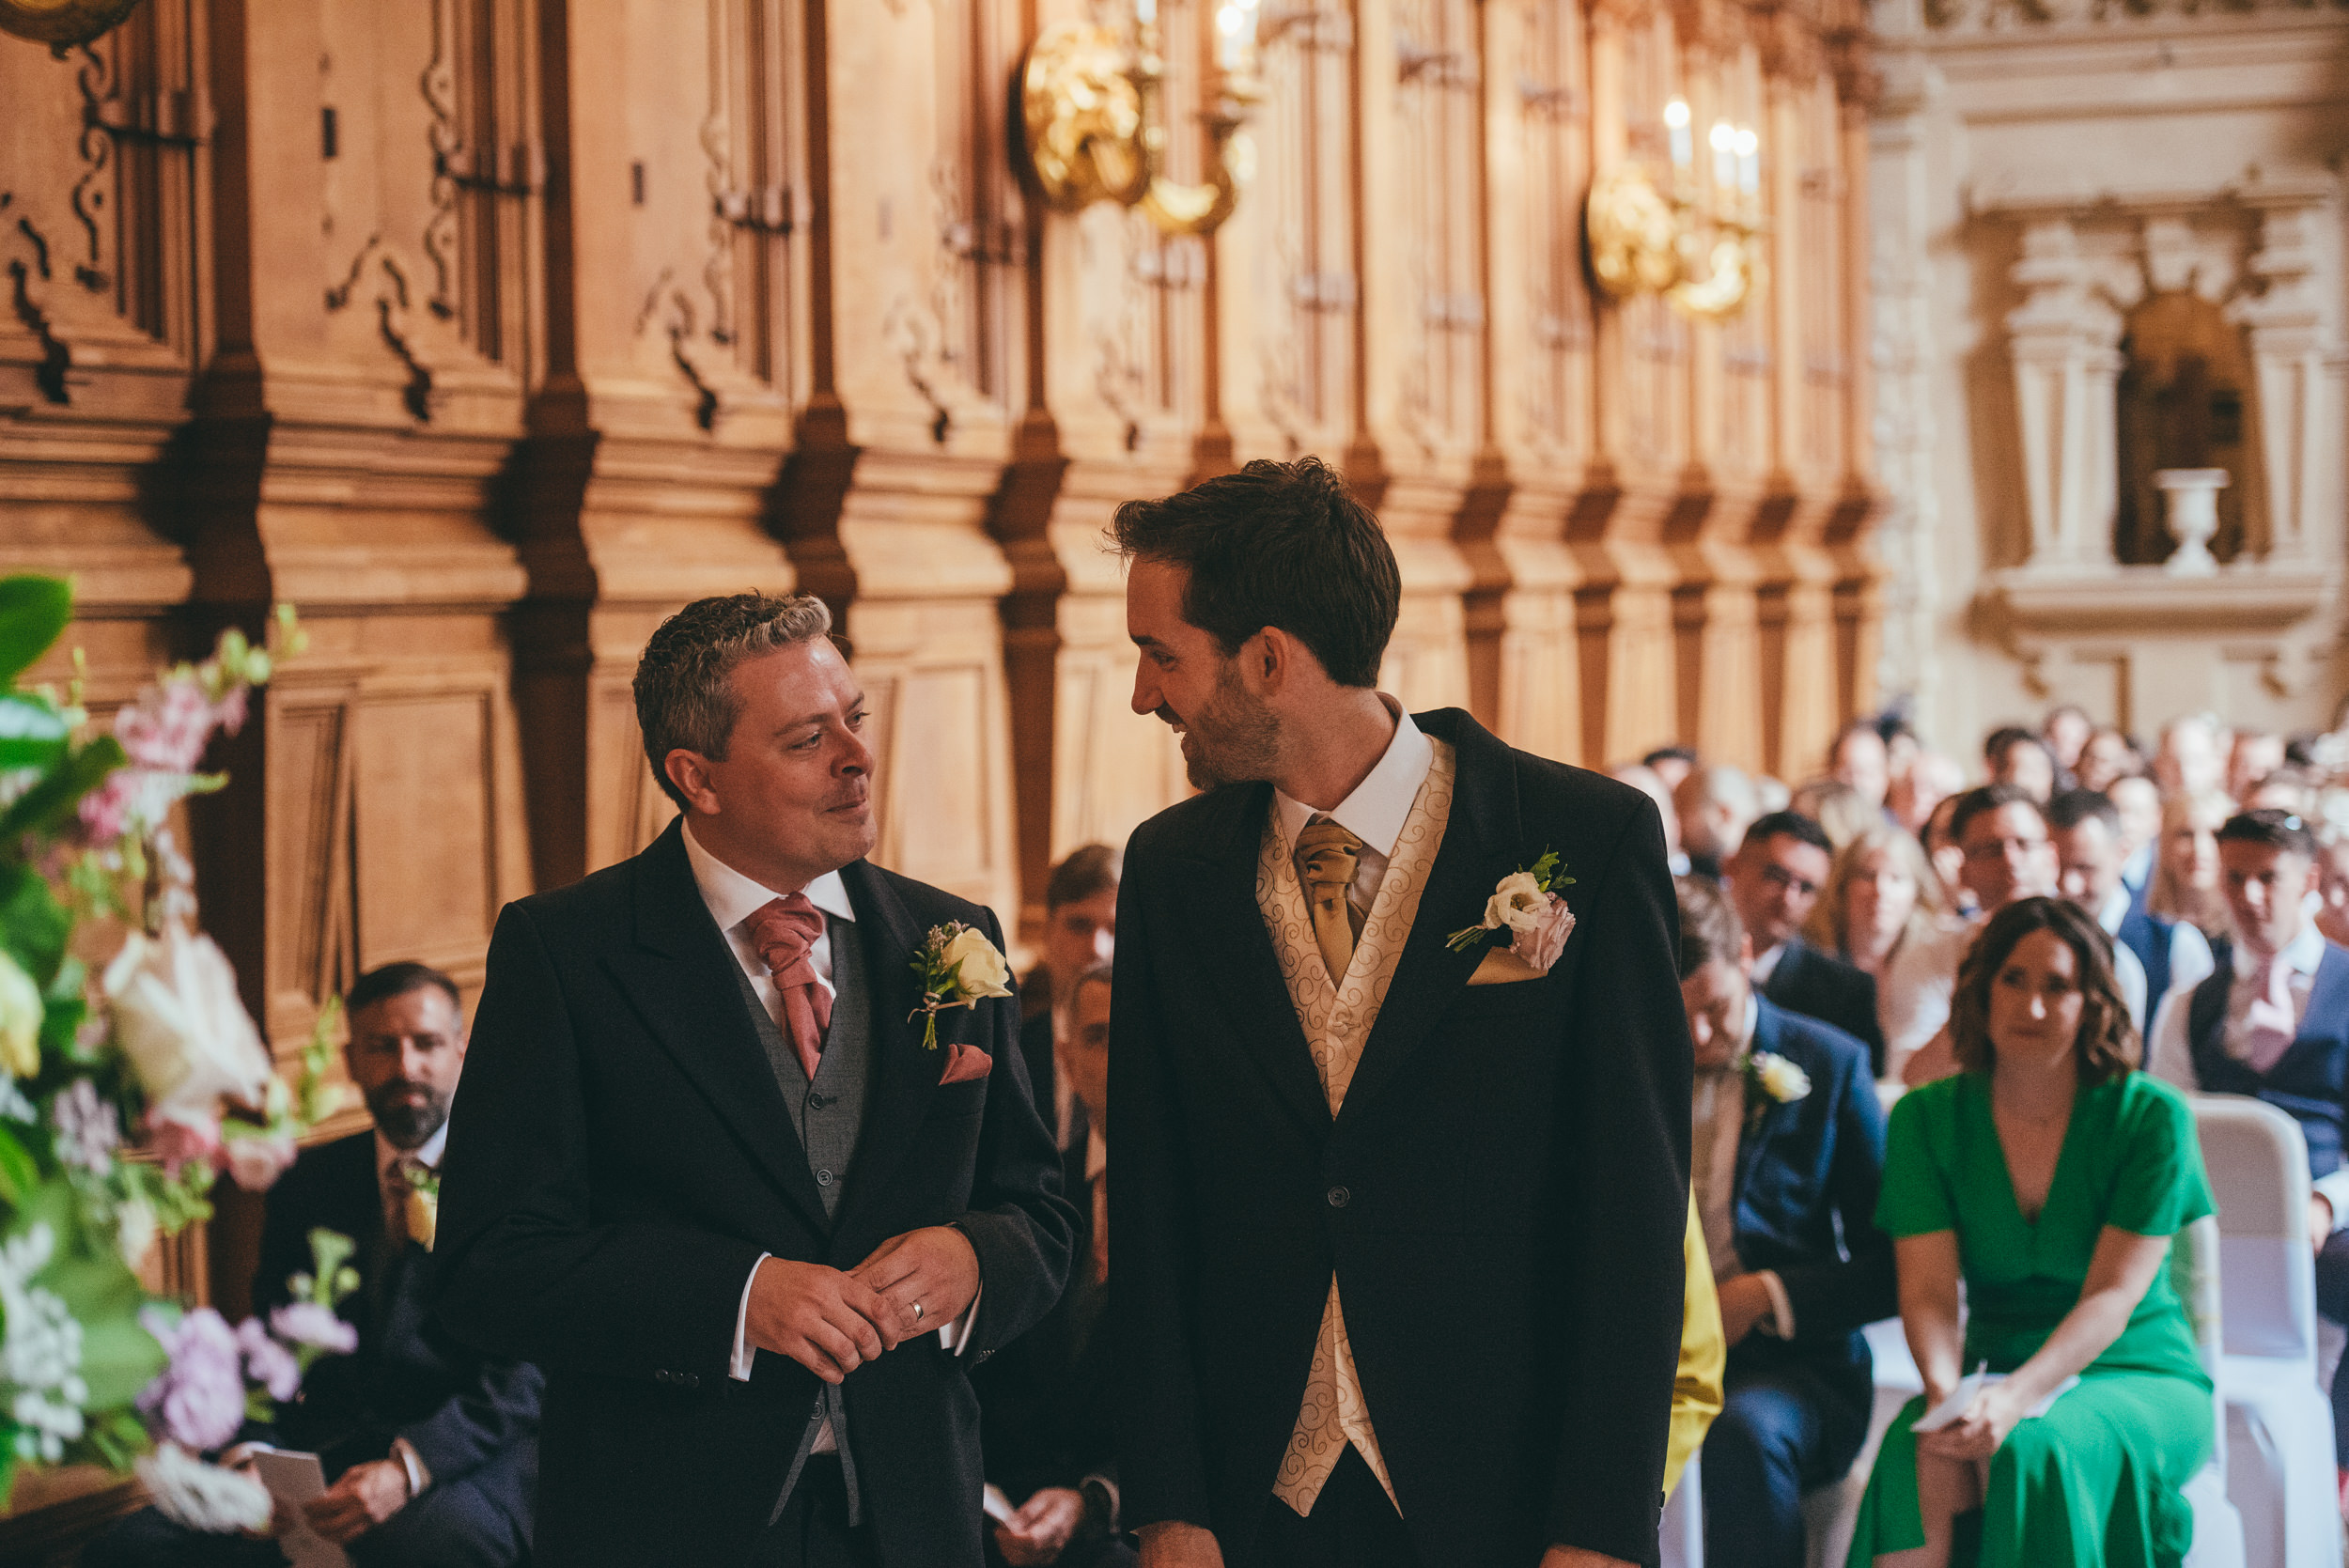 Groom and bestman share a joke while waiting for the bride to arrive at Harlaxton Manor